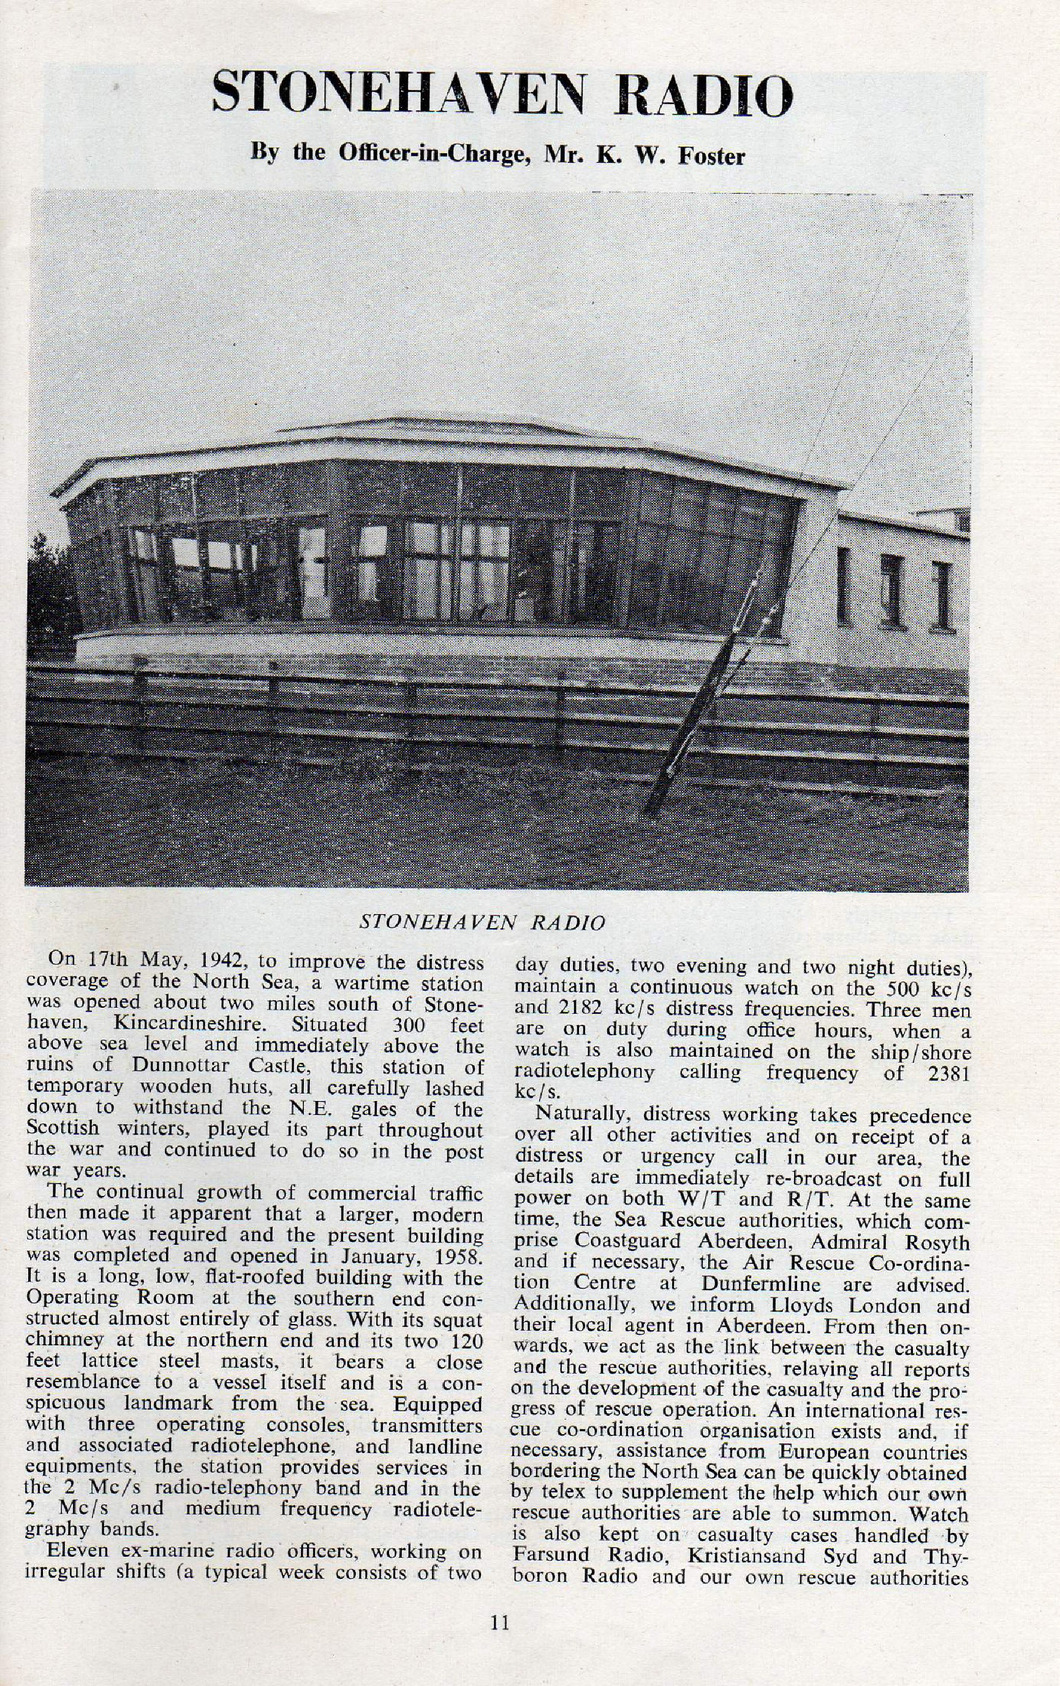 The first page from the magazine article showing picture of the Stonehaven Radio building